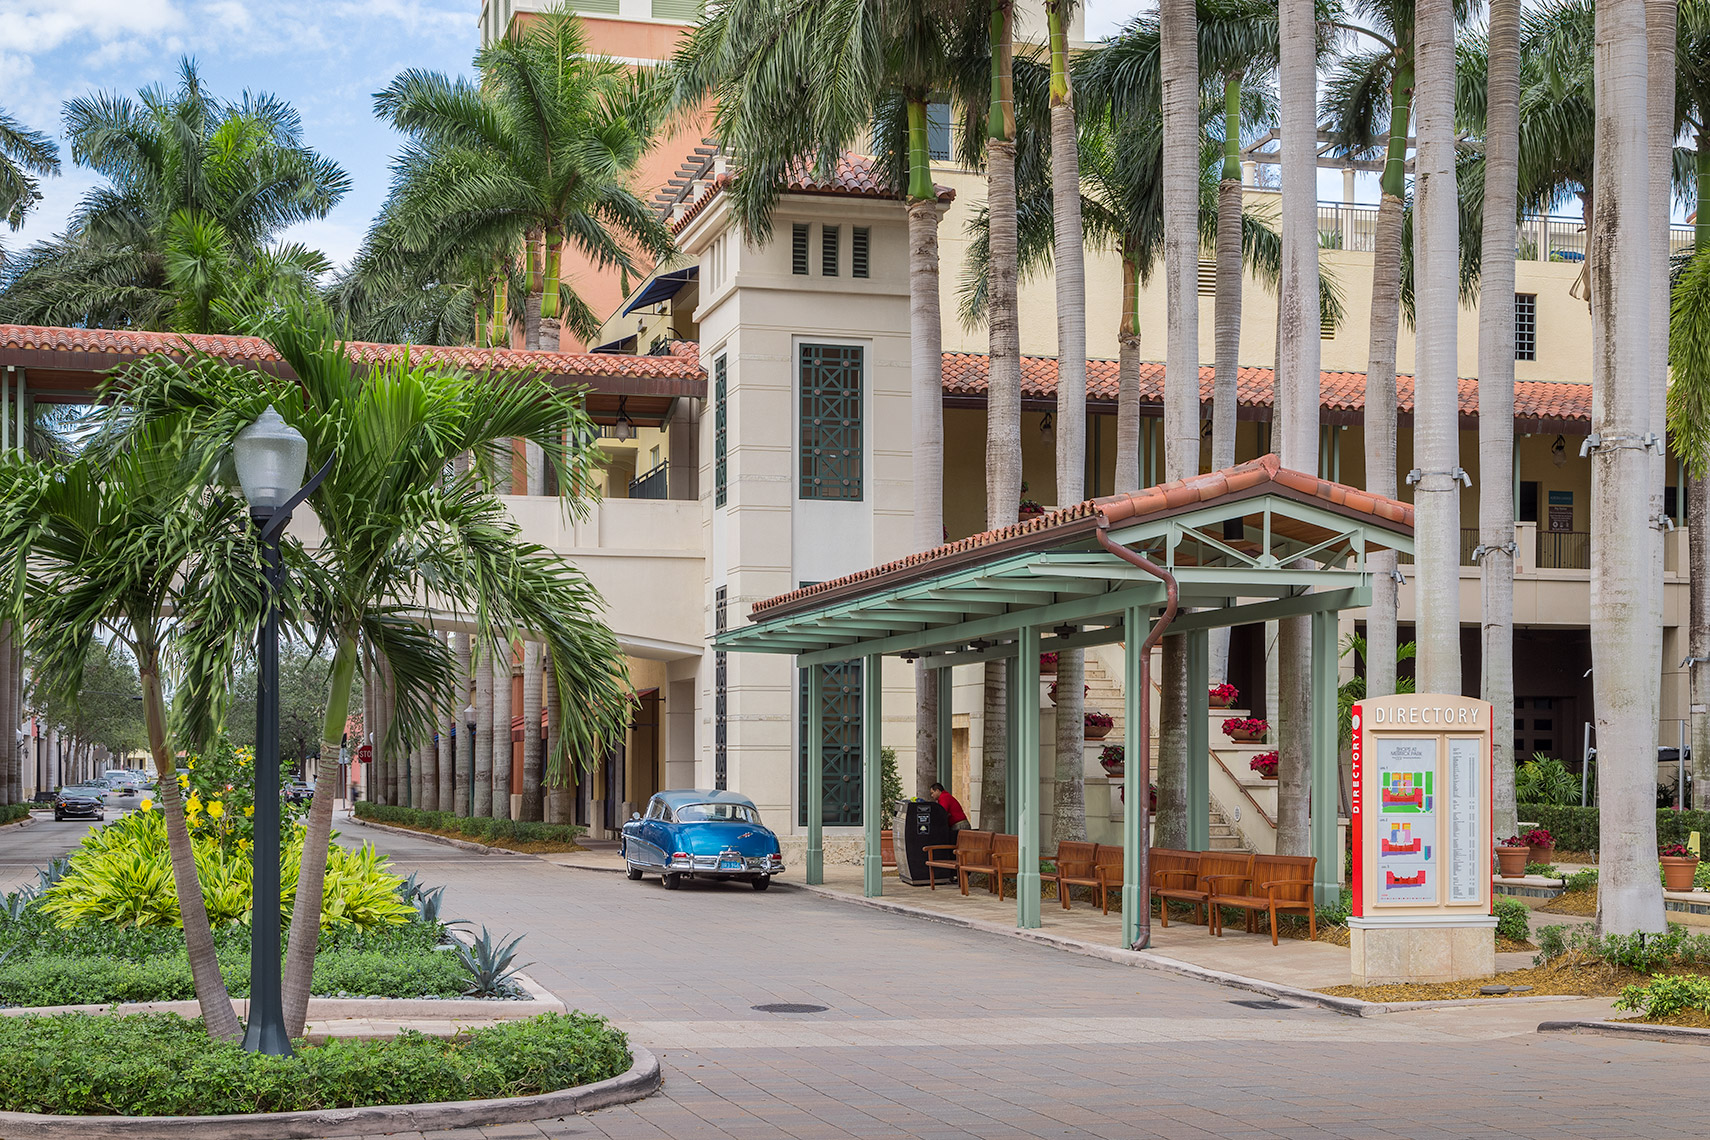 valet and entrance to Shops At Merrick Park